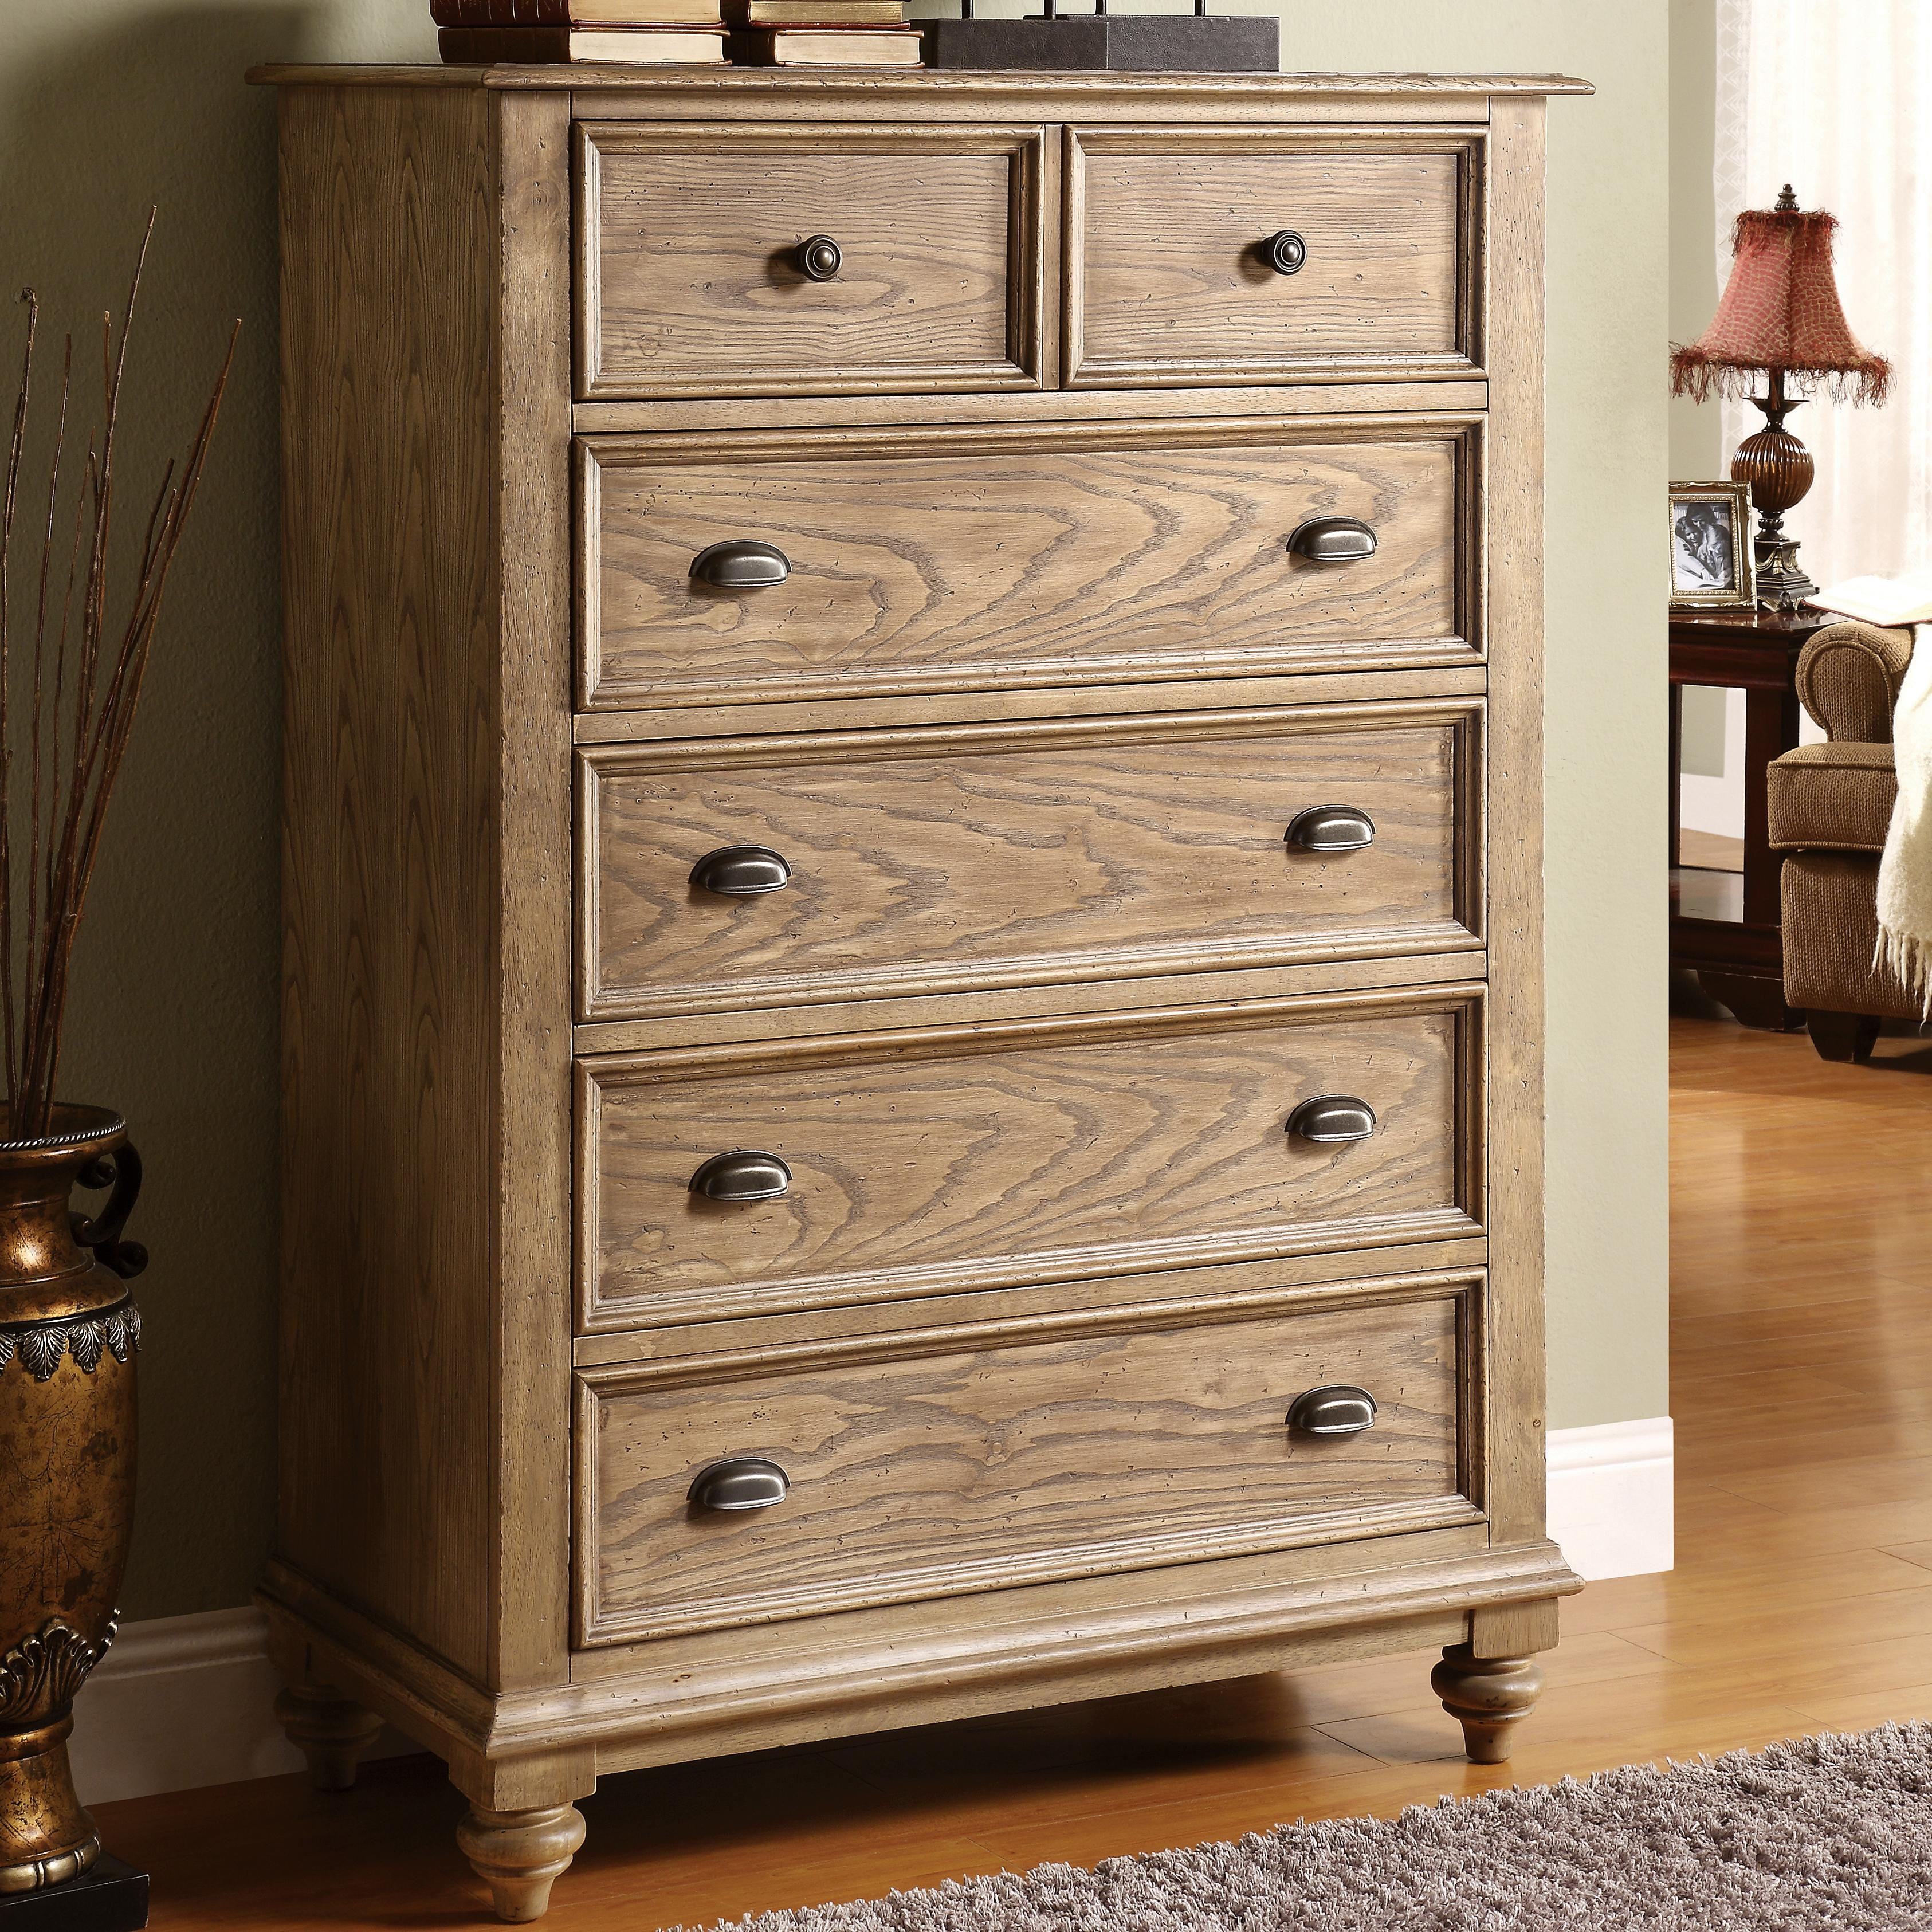 Riverside Furniture Coventry 32465 Tall 5 Drawer Chest With Bun Feet Dunk Bright Furniture